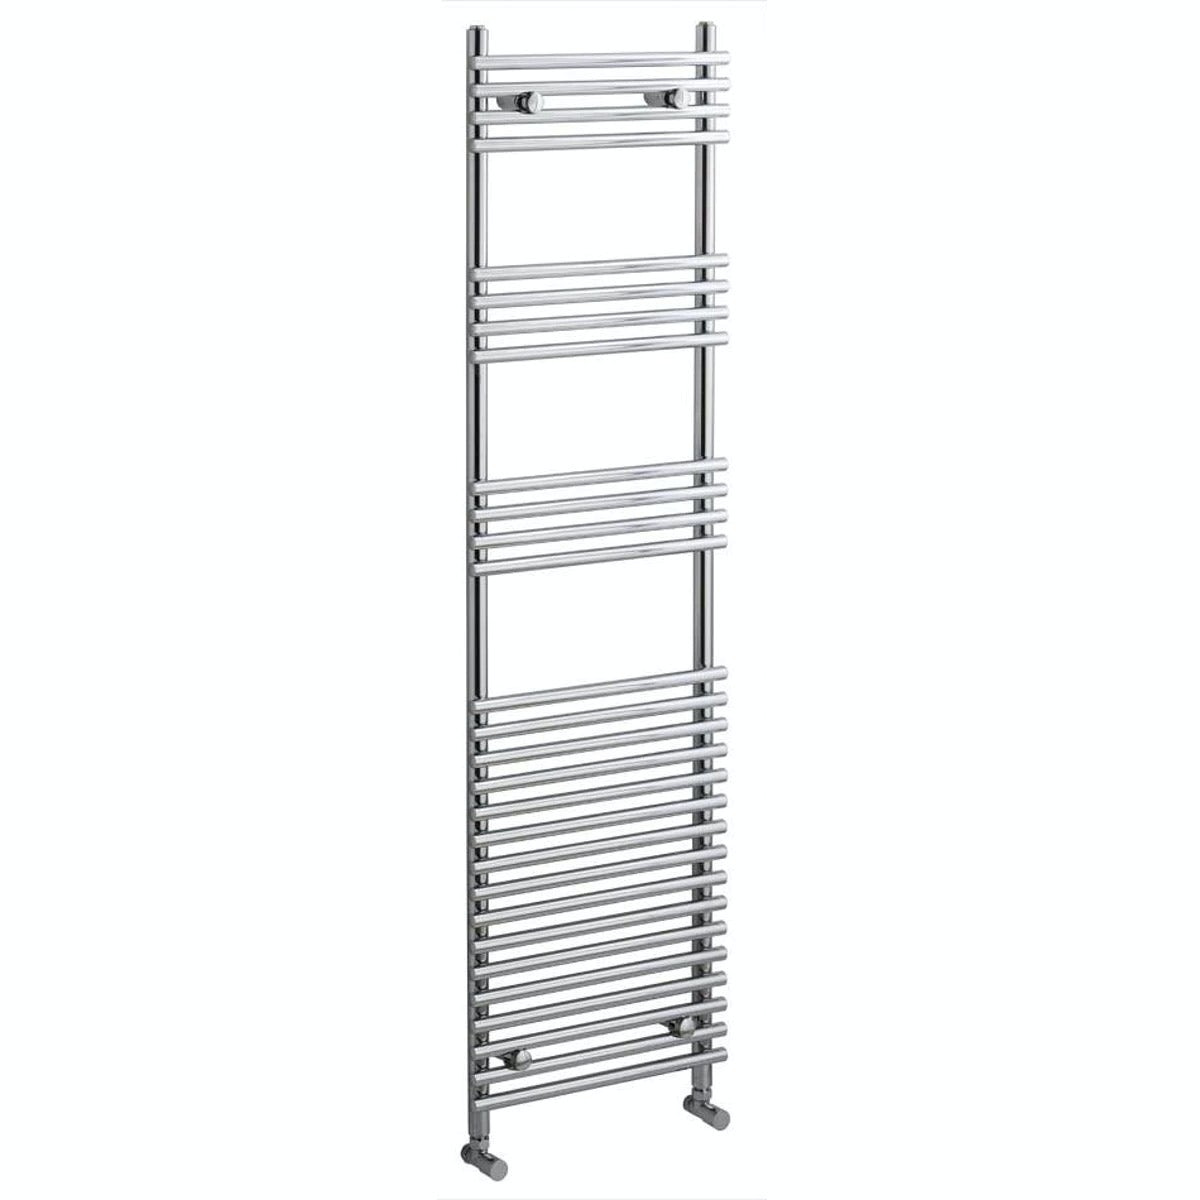 Orchard Derwent heated towel rail 1650 x 450 offer pack